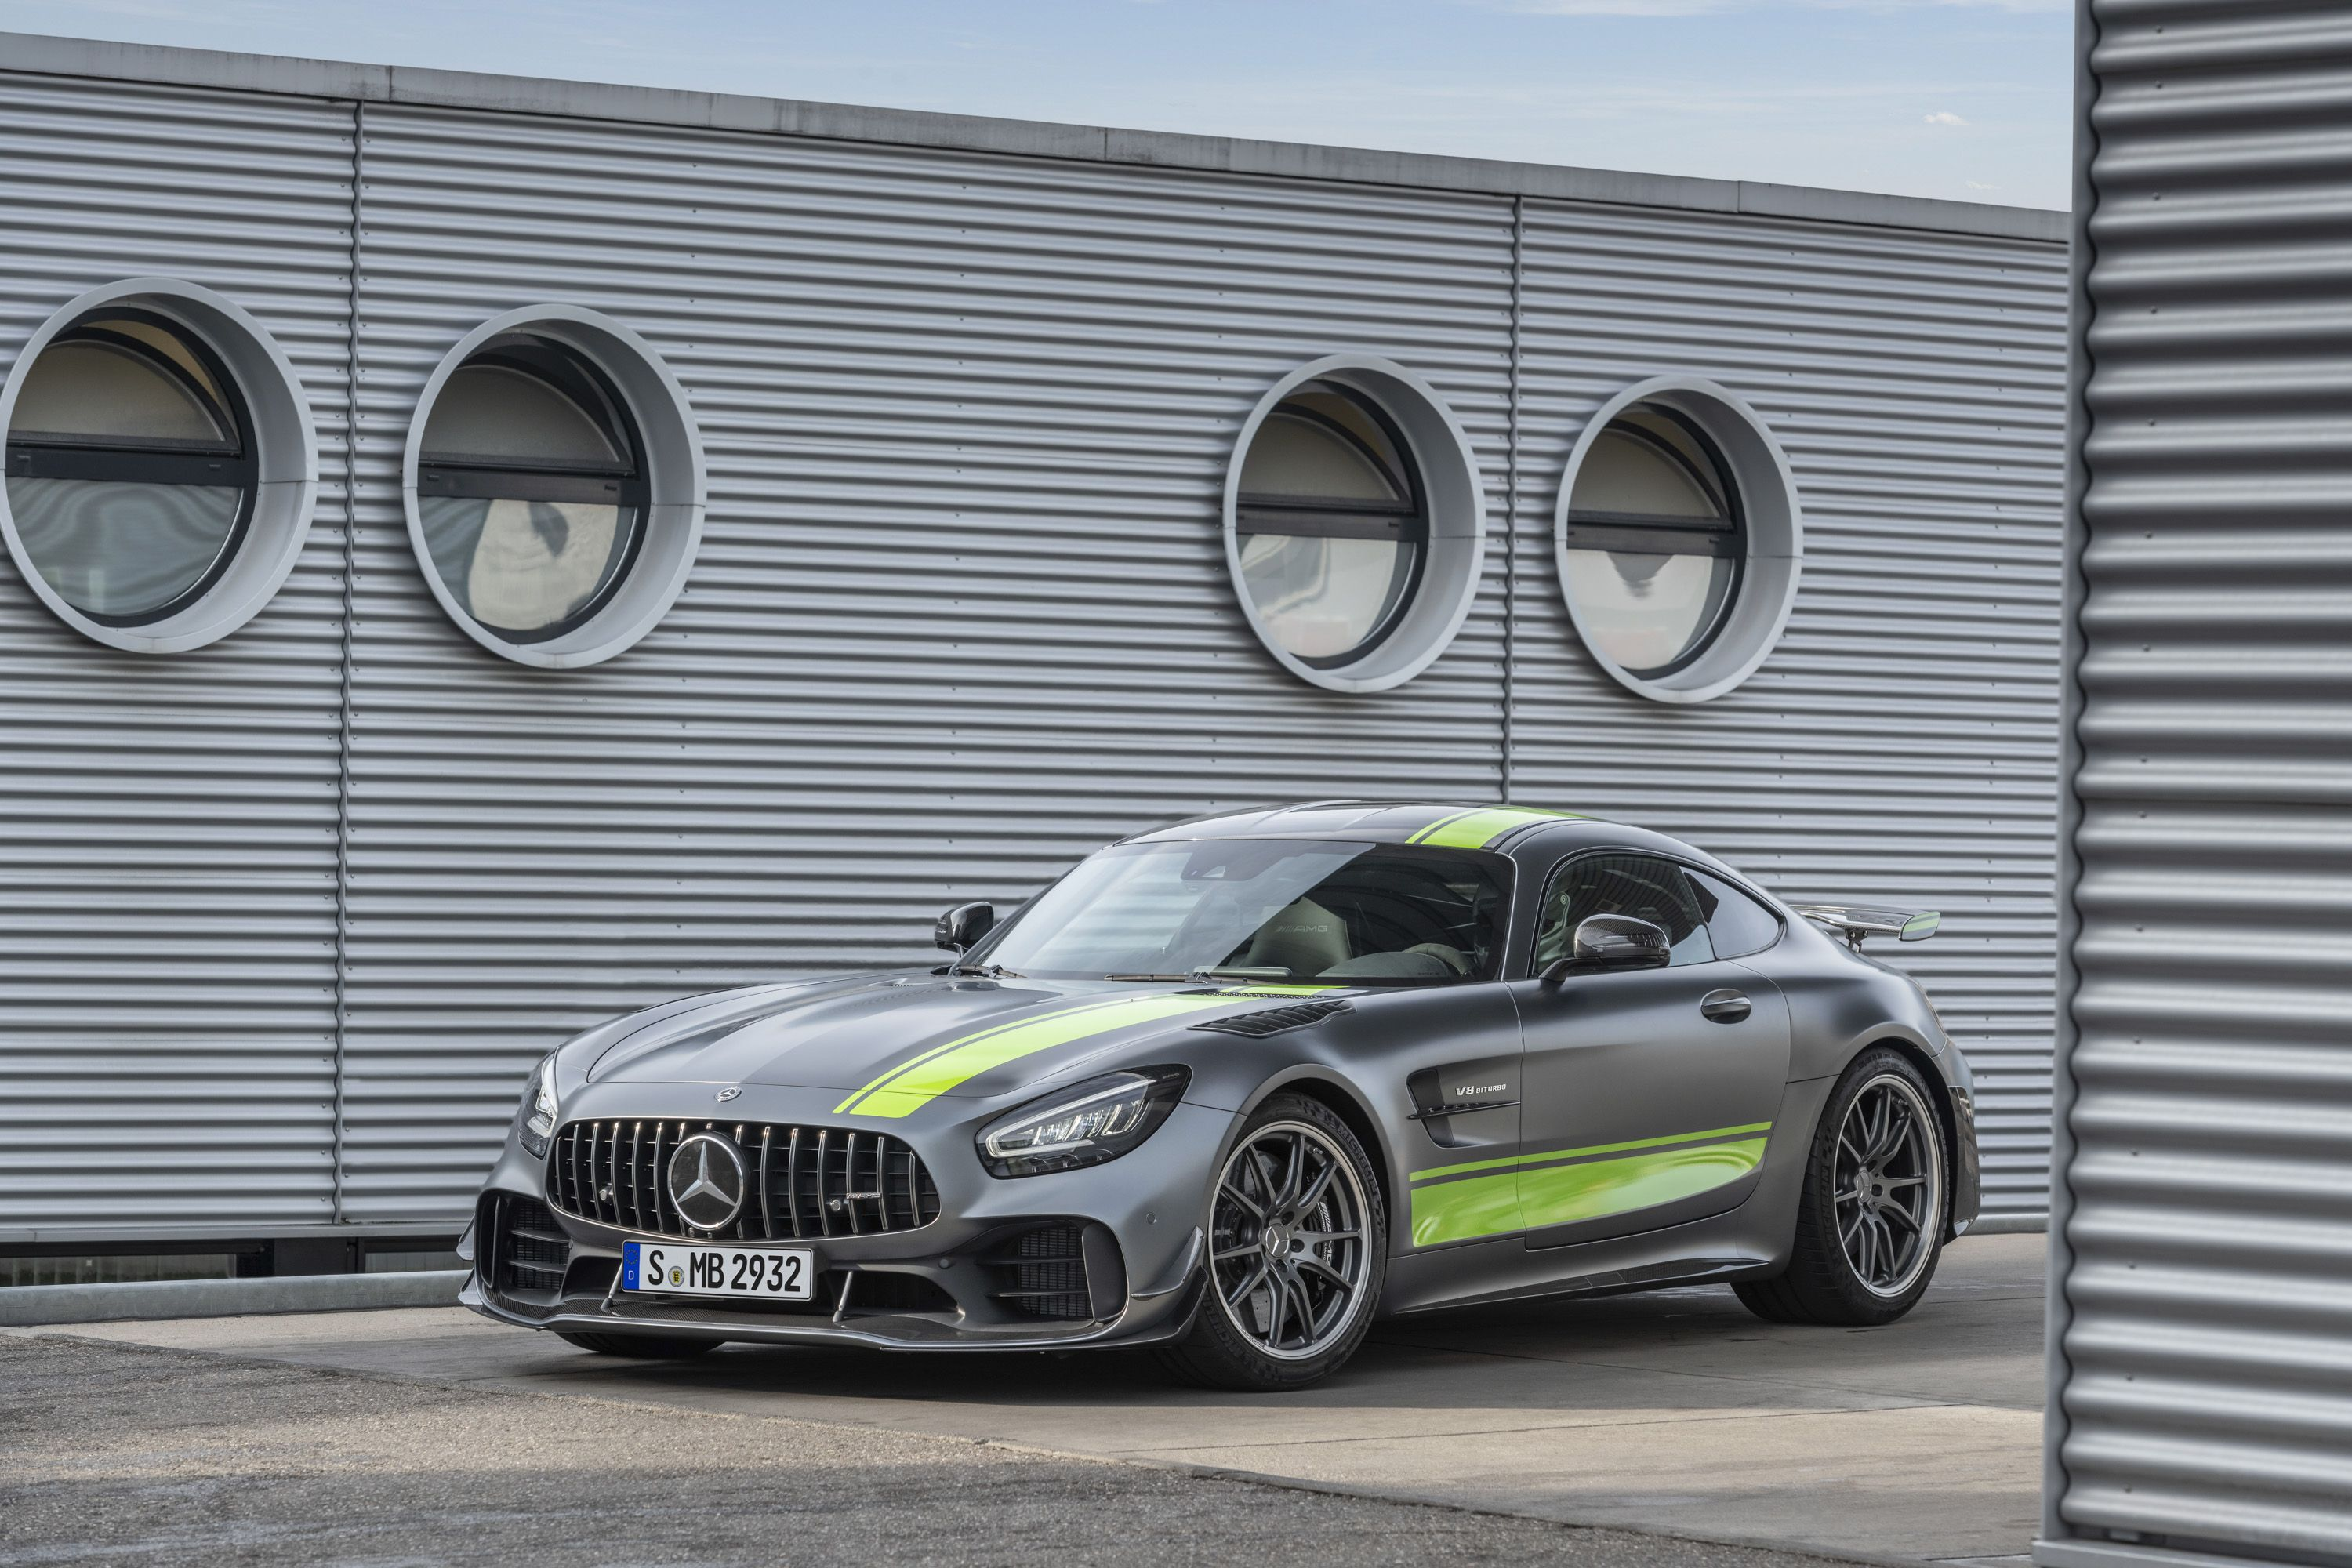 Wallpaper Of The Day 2020 Mercedes Amg Gt R Pro Mercedes Amg